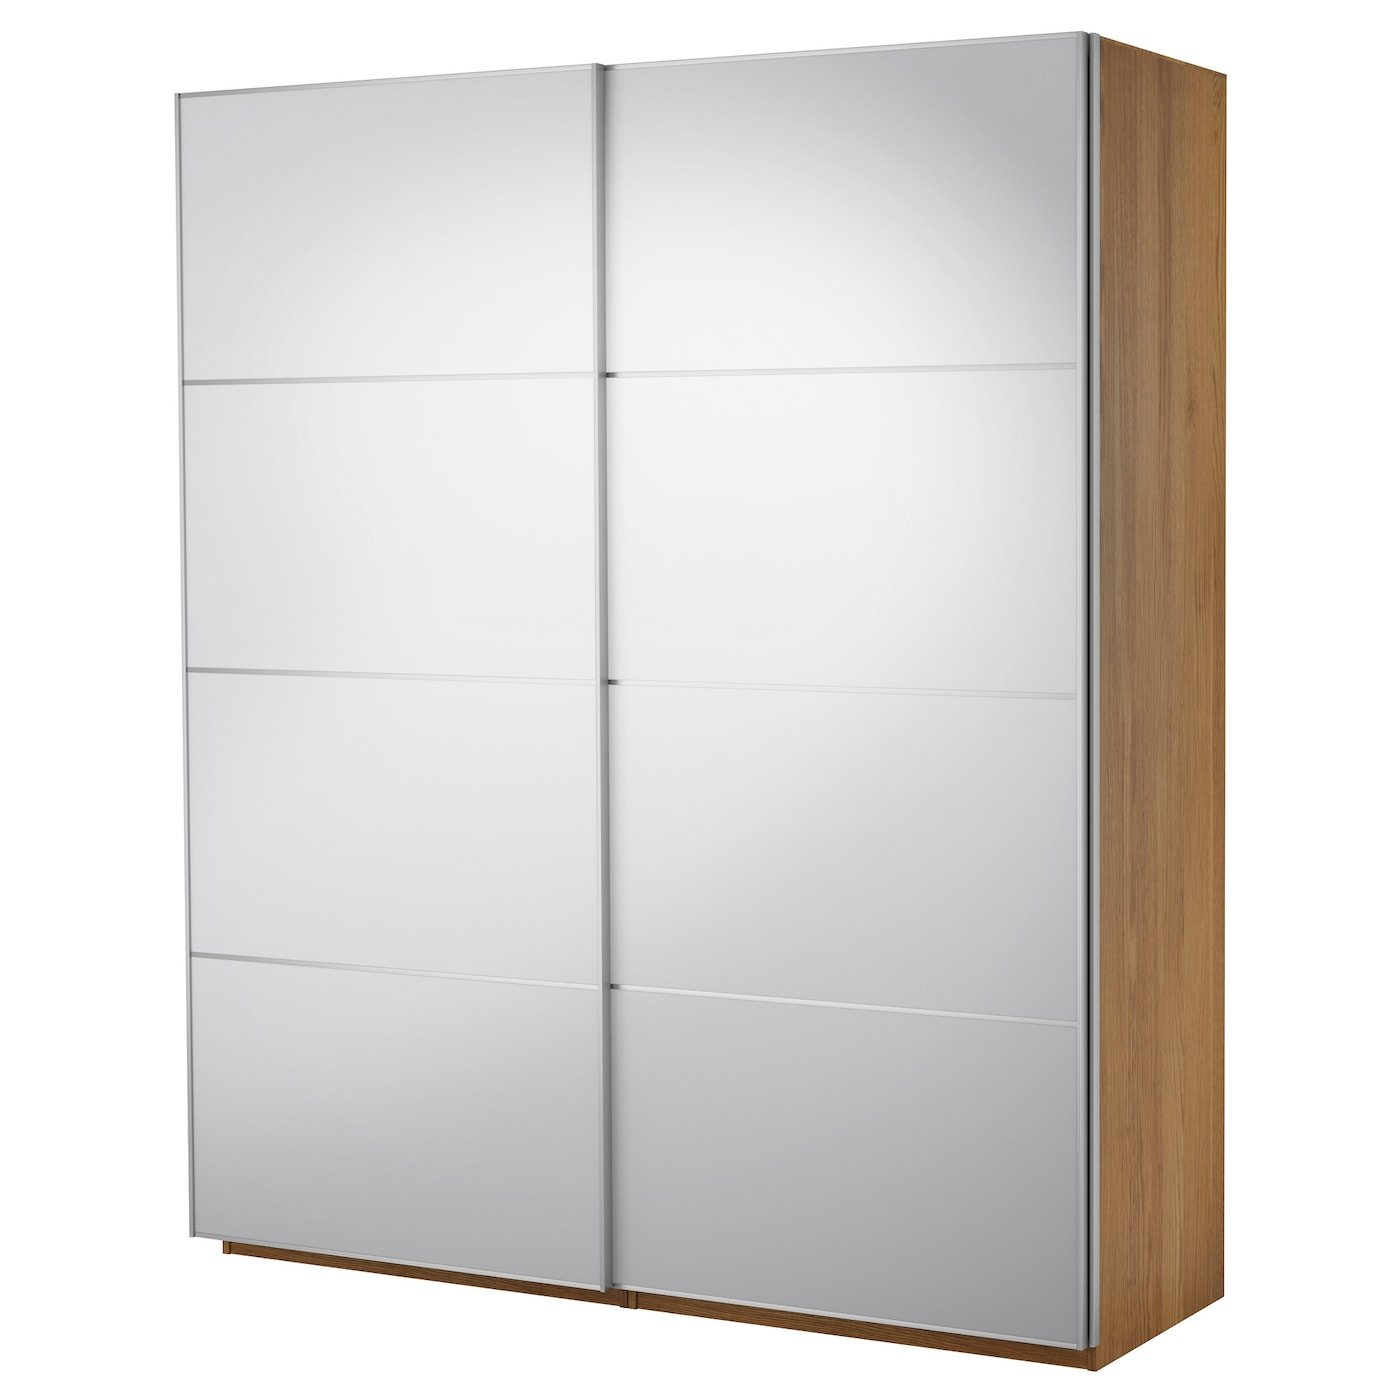 Pax wardrobe with sliding doors oak effect auli mirror for Ikea glass sliding doors